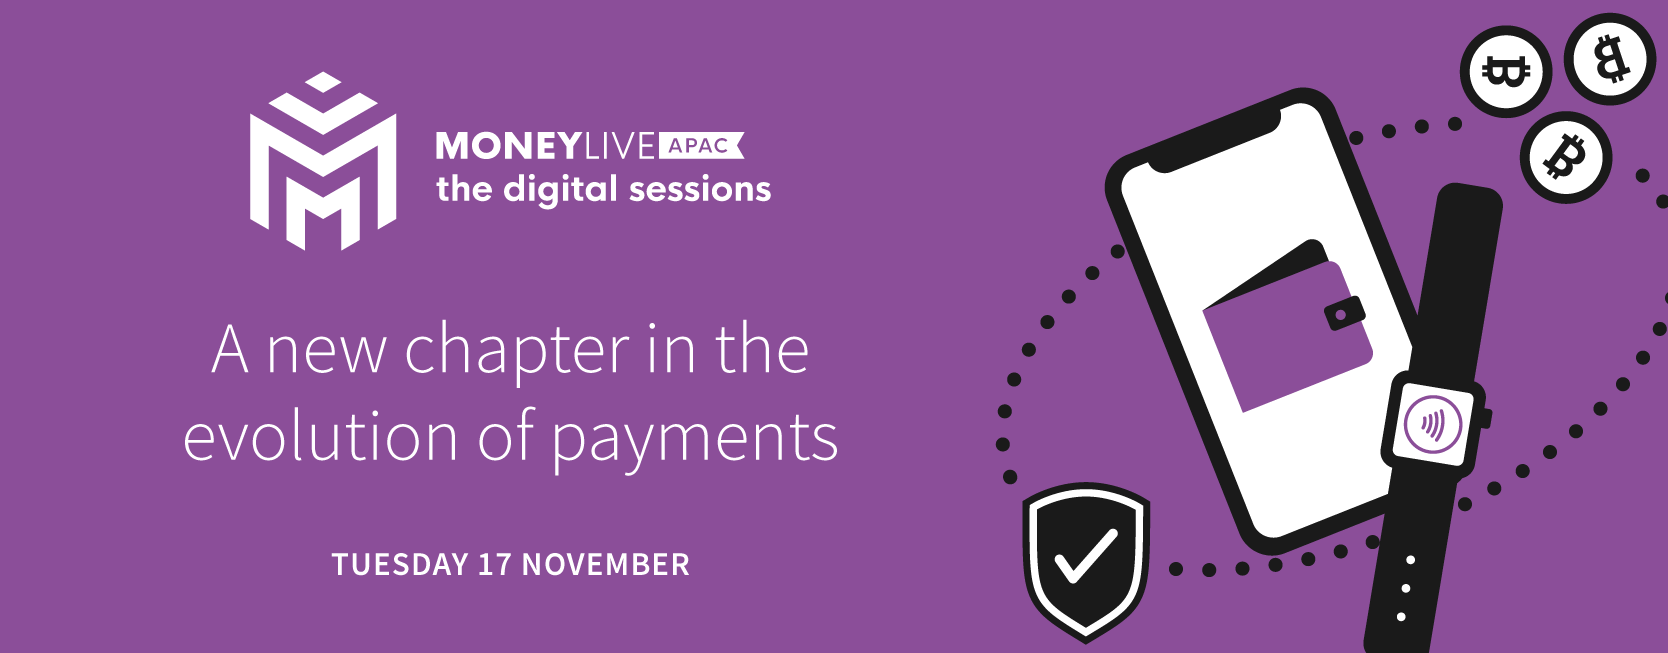 MoneyLIVE APAC The Digital Sessions